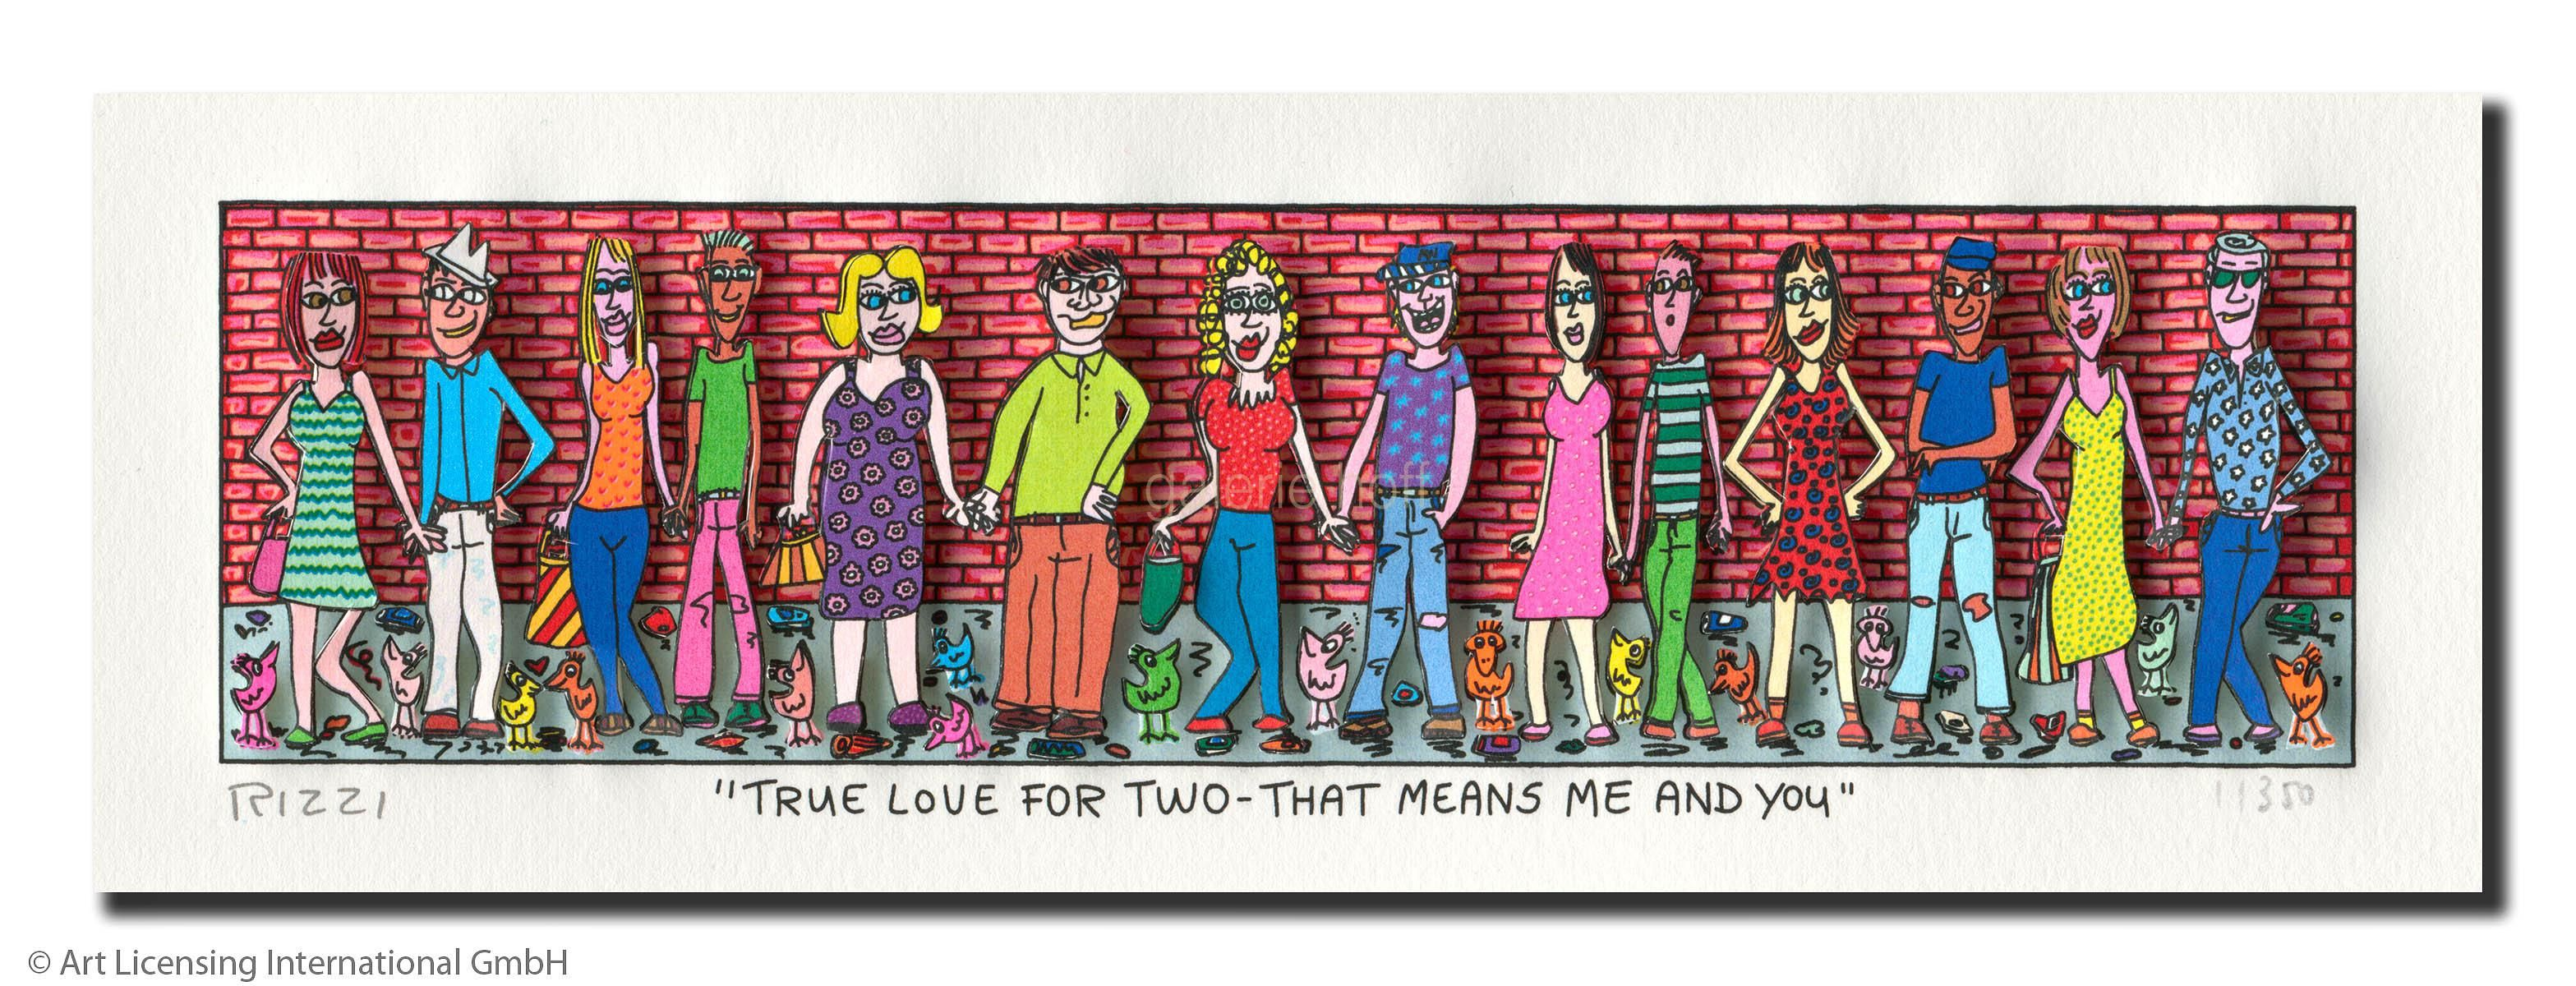 James Rizzi True Love For Two That Means Me And You Galerie Hoff James Rizzi Kunst Echt Jetzt